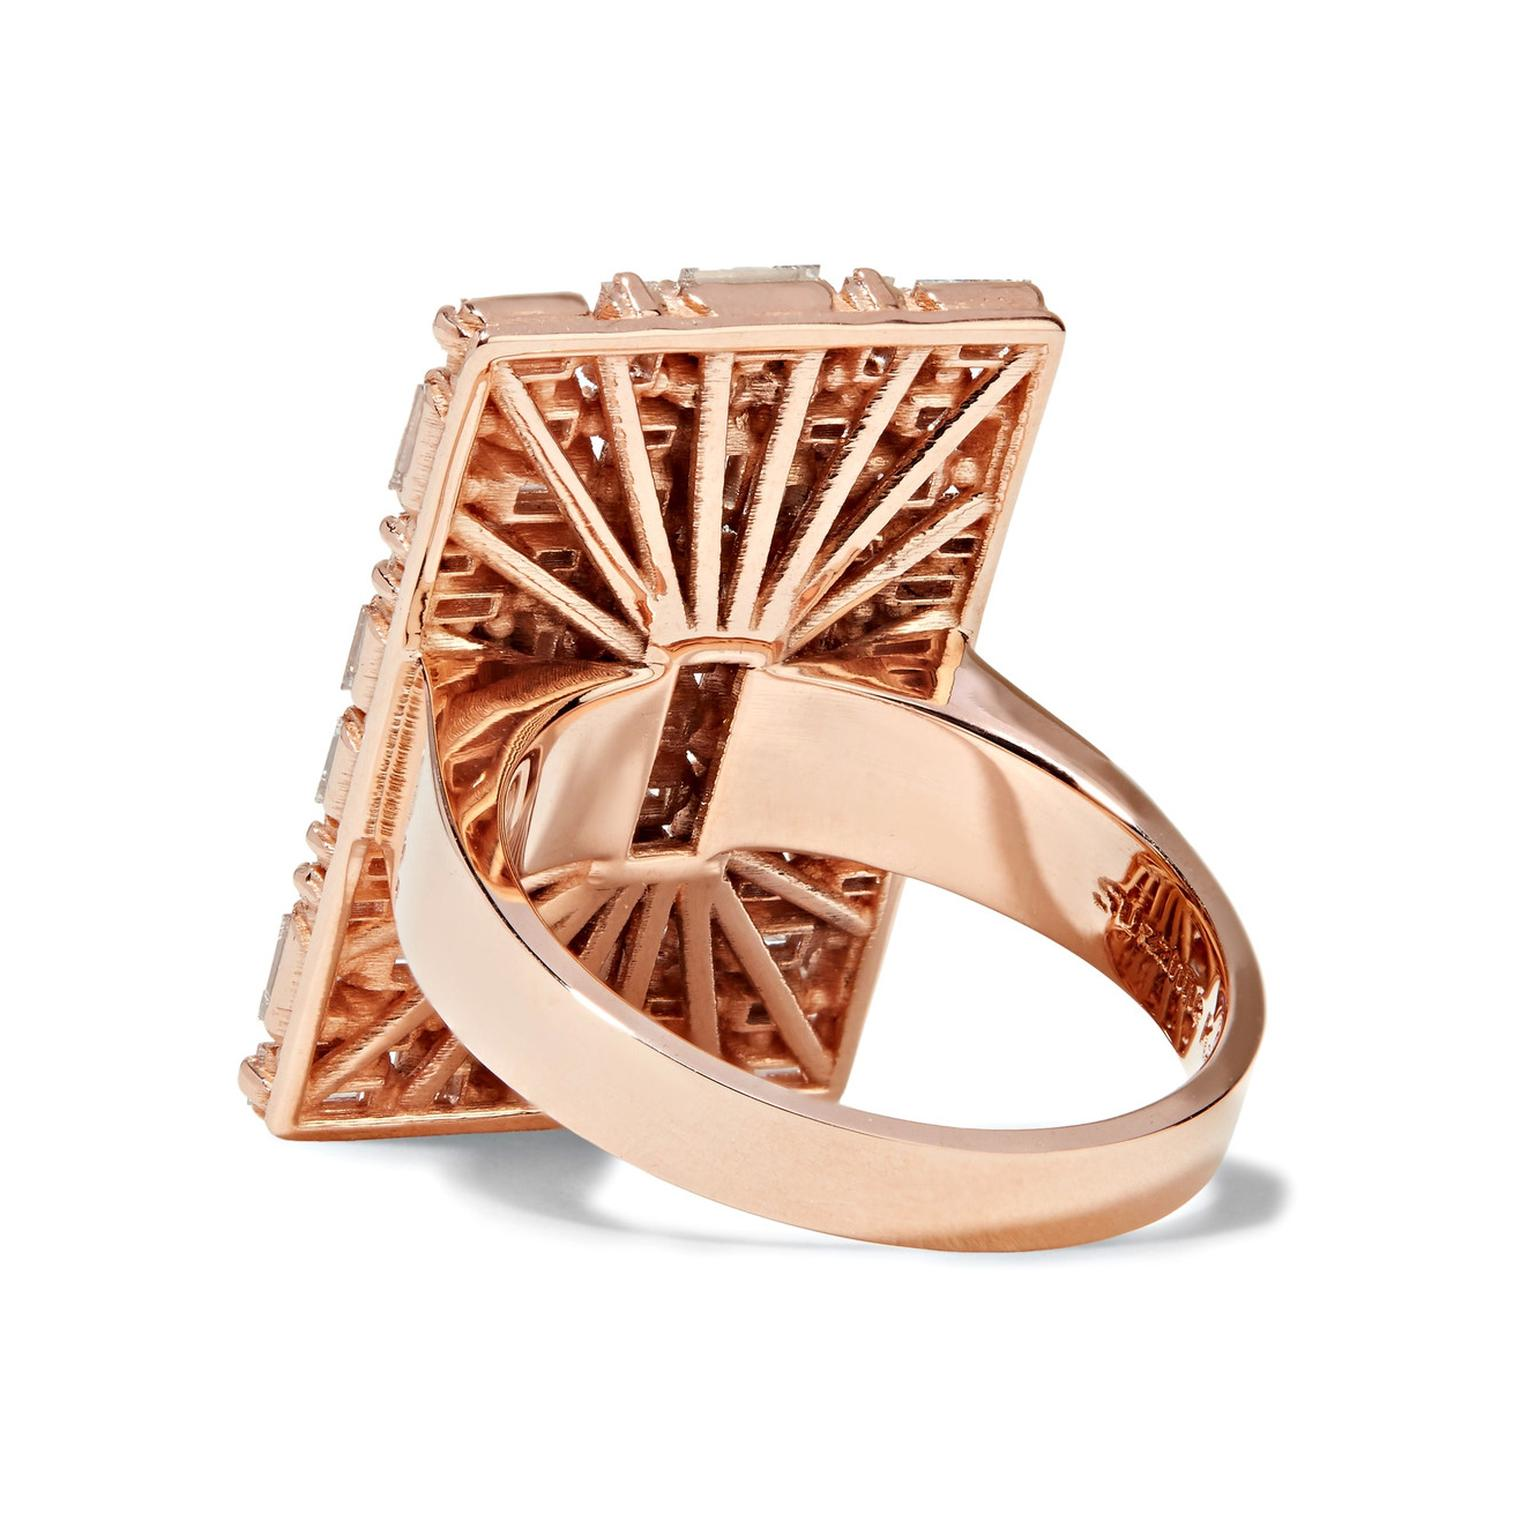 Suzanne Kalan rose gold and diamond ring reverse